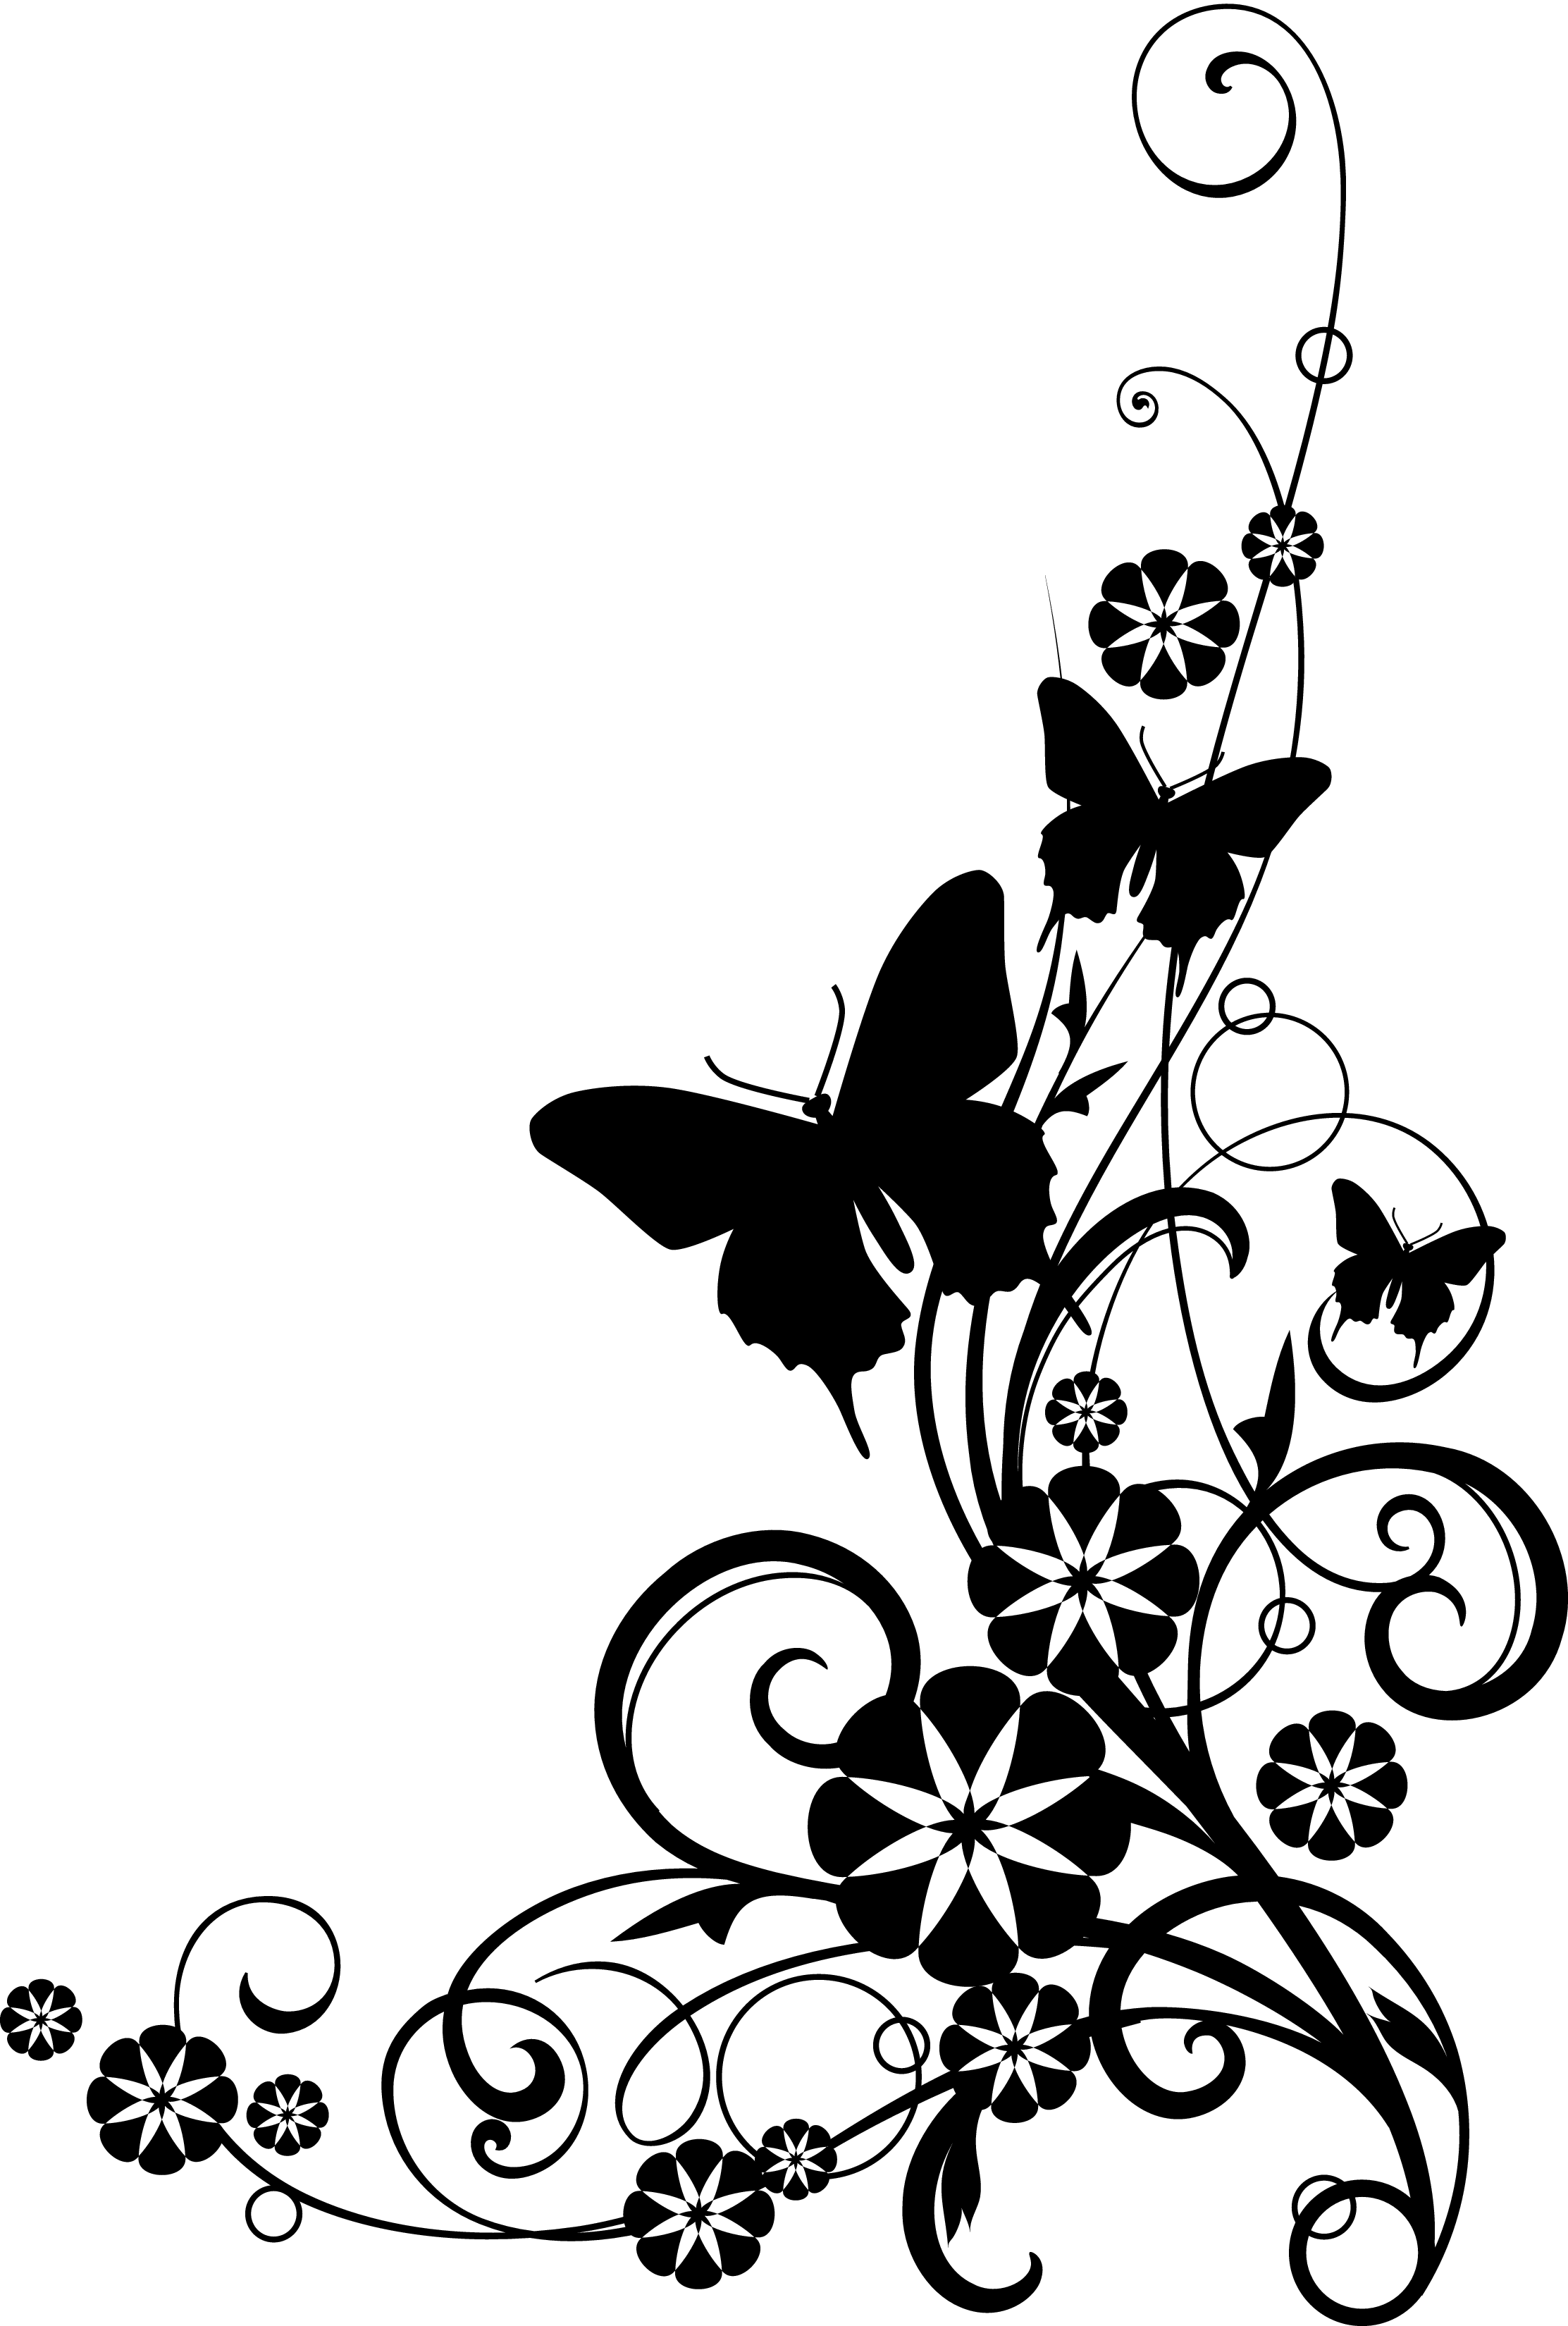 Line Art Design Png : Border line art design black and white clipart best